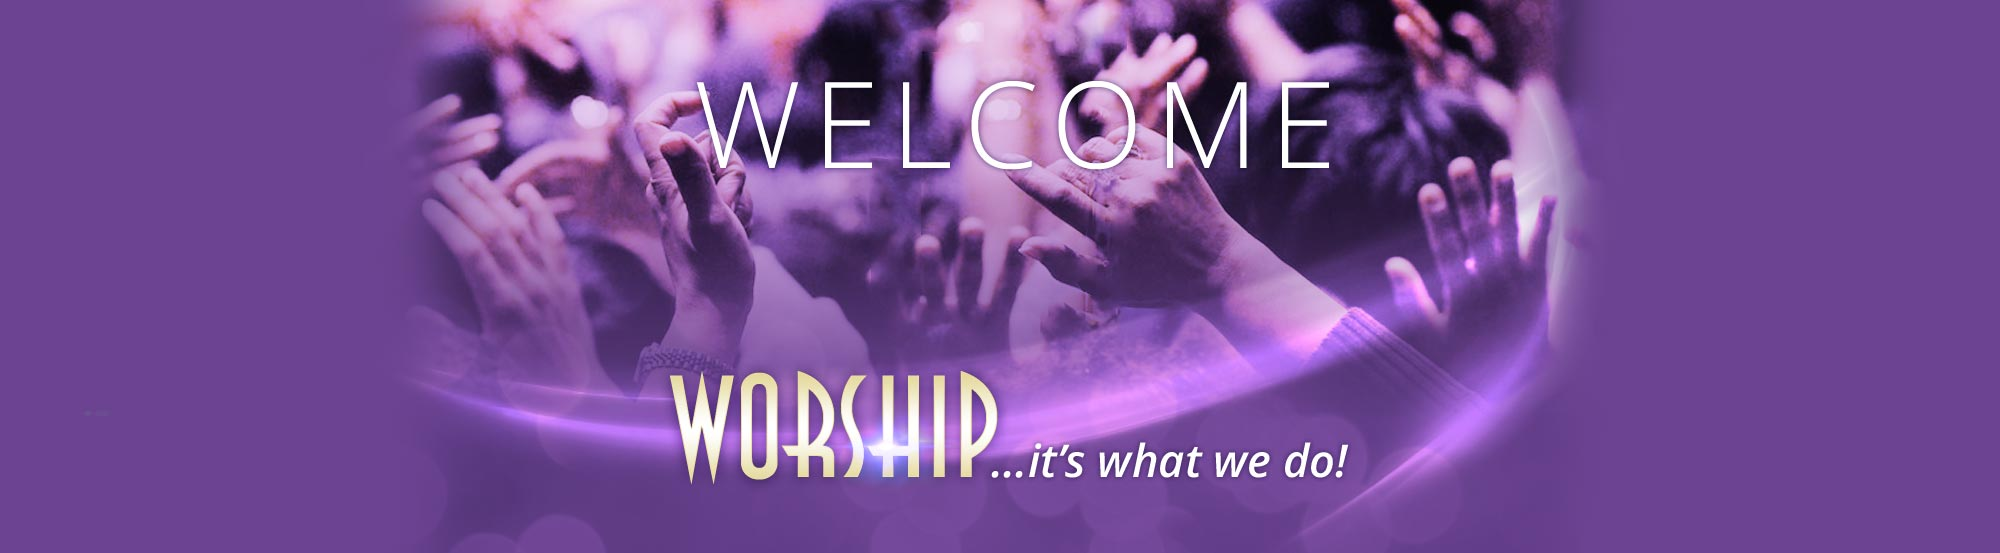 Welcome to New Alpha Worship Center